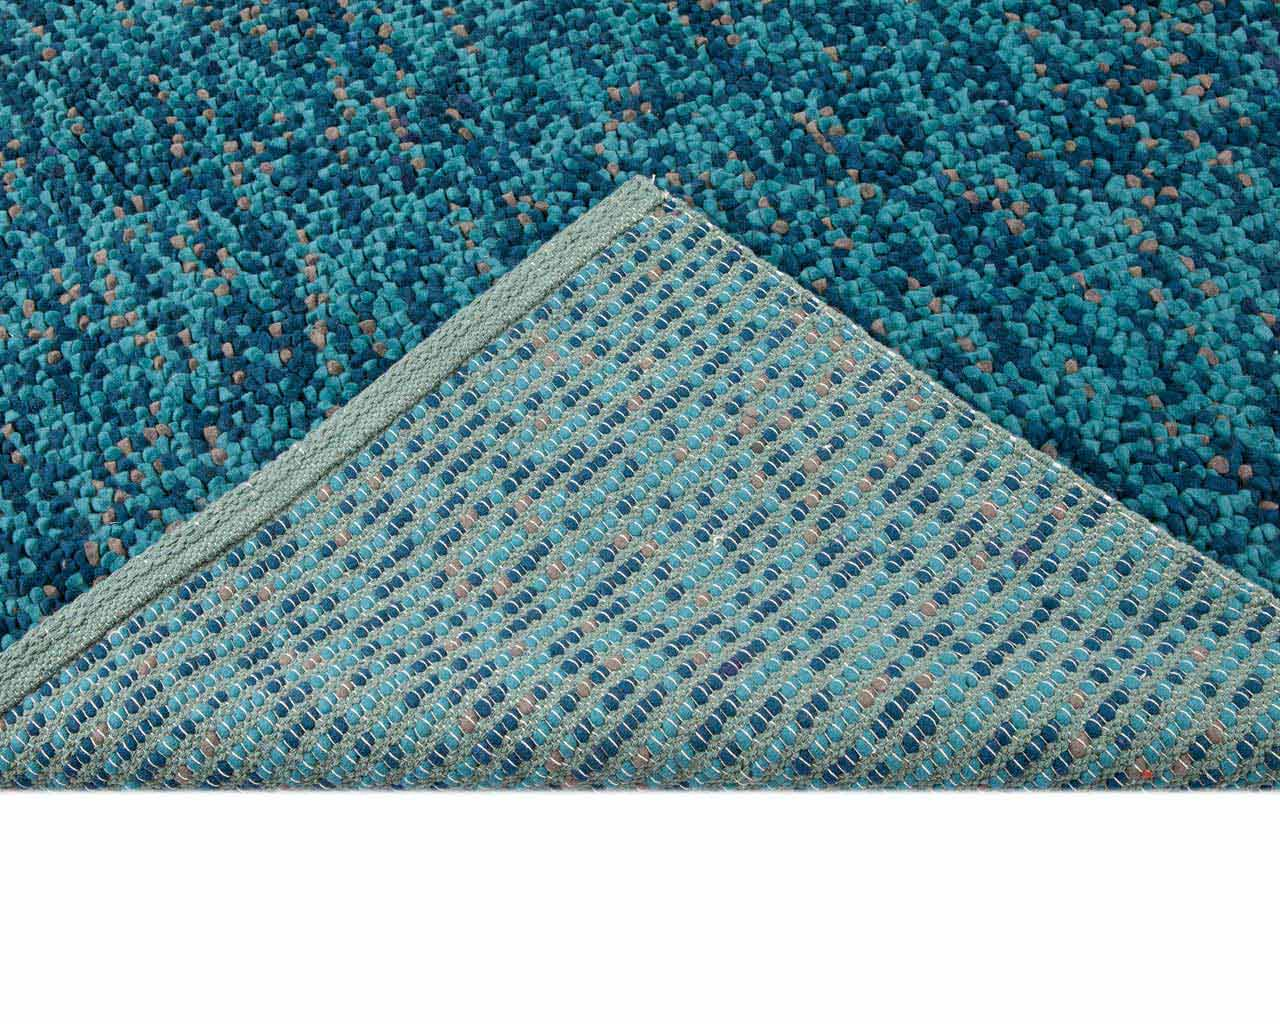 attic rugs designer blue green